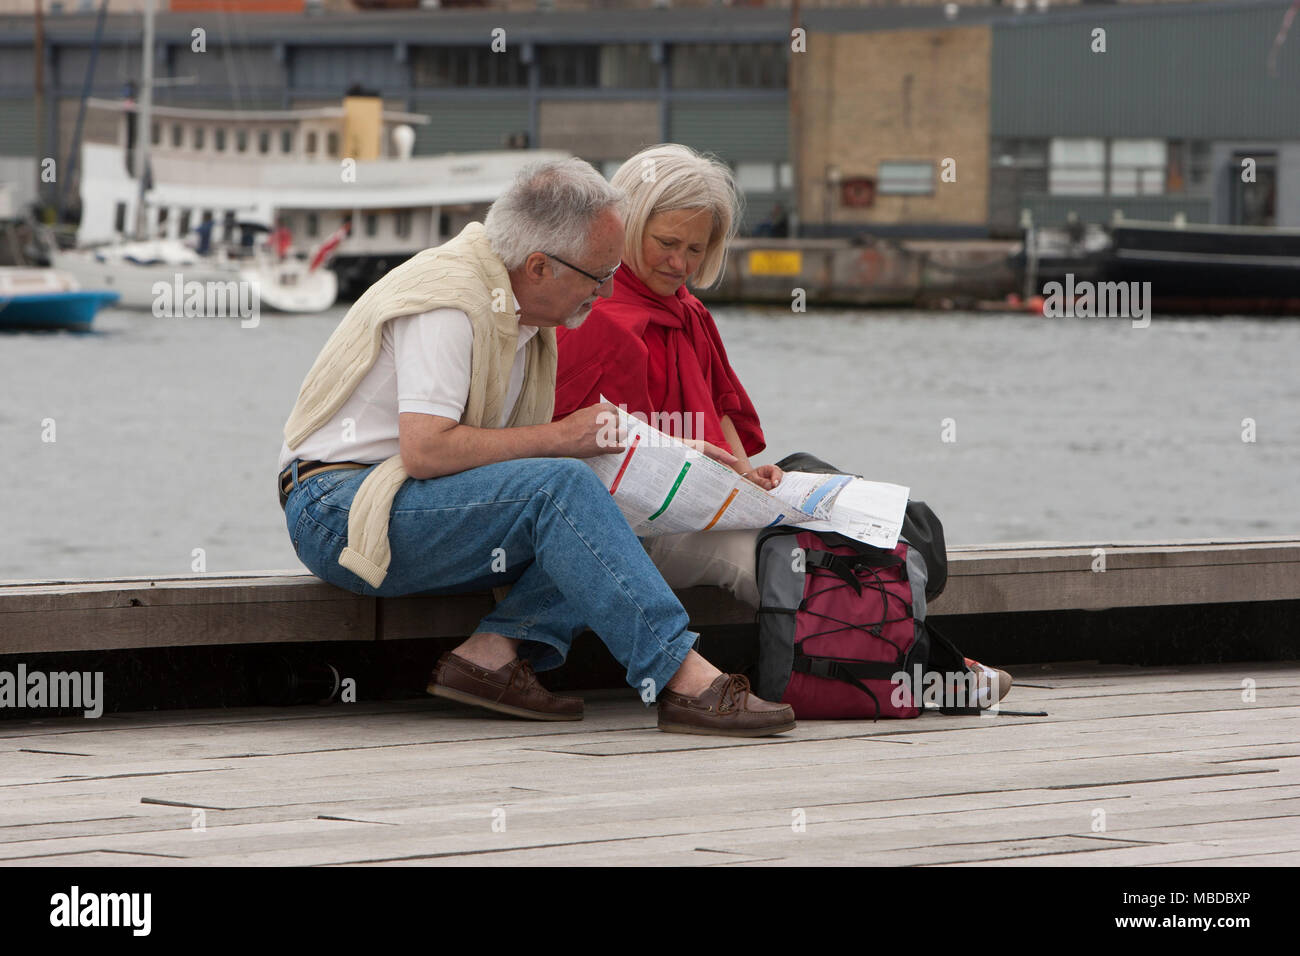 A touristing older couple looking at the map, Copenhagen, Denmark. - Stock Image